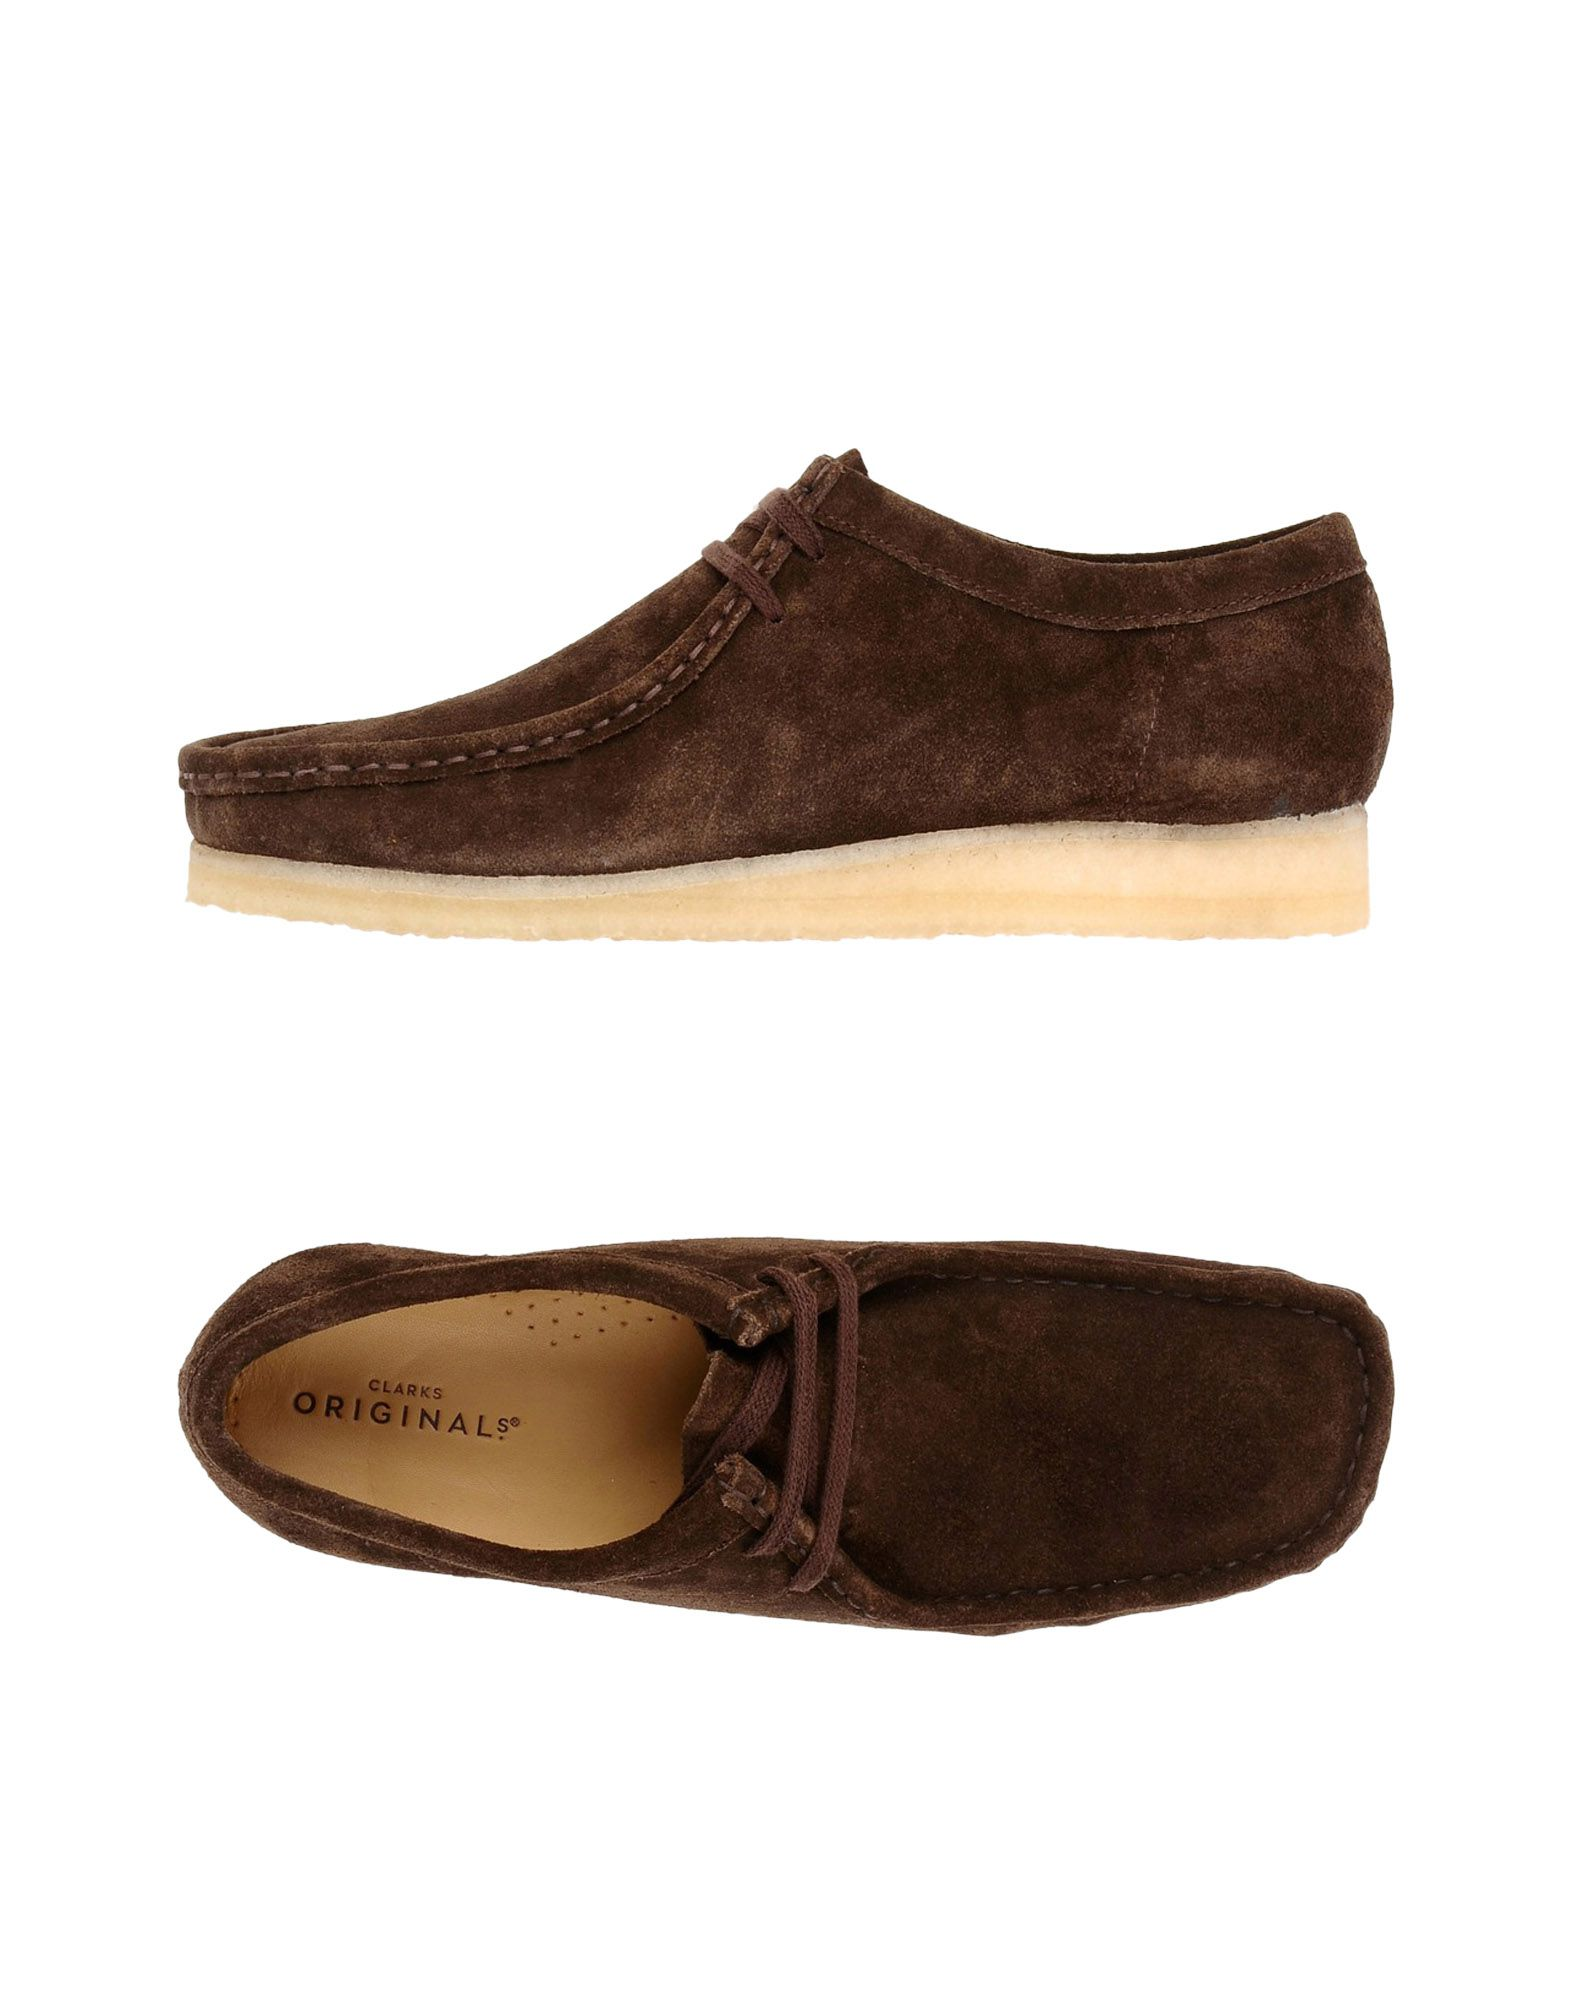 b1f519b5d903 Clarks Originals Wallabee - Laced Shoes - Men Clarks Originals Laced ...